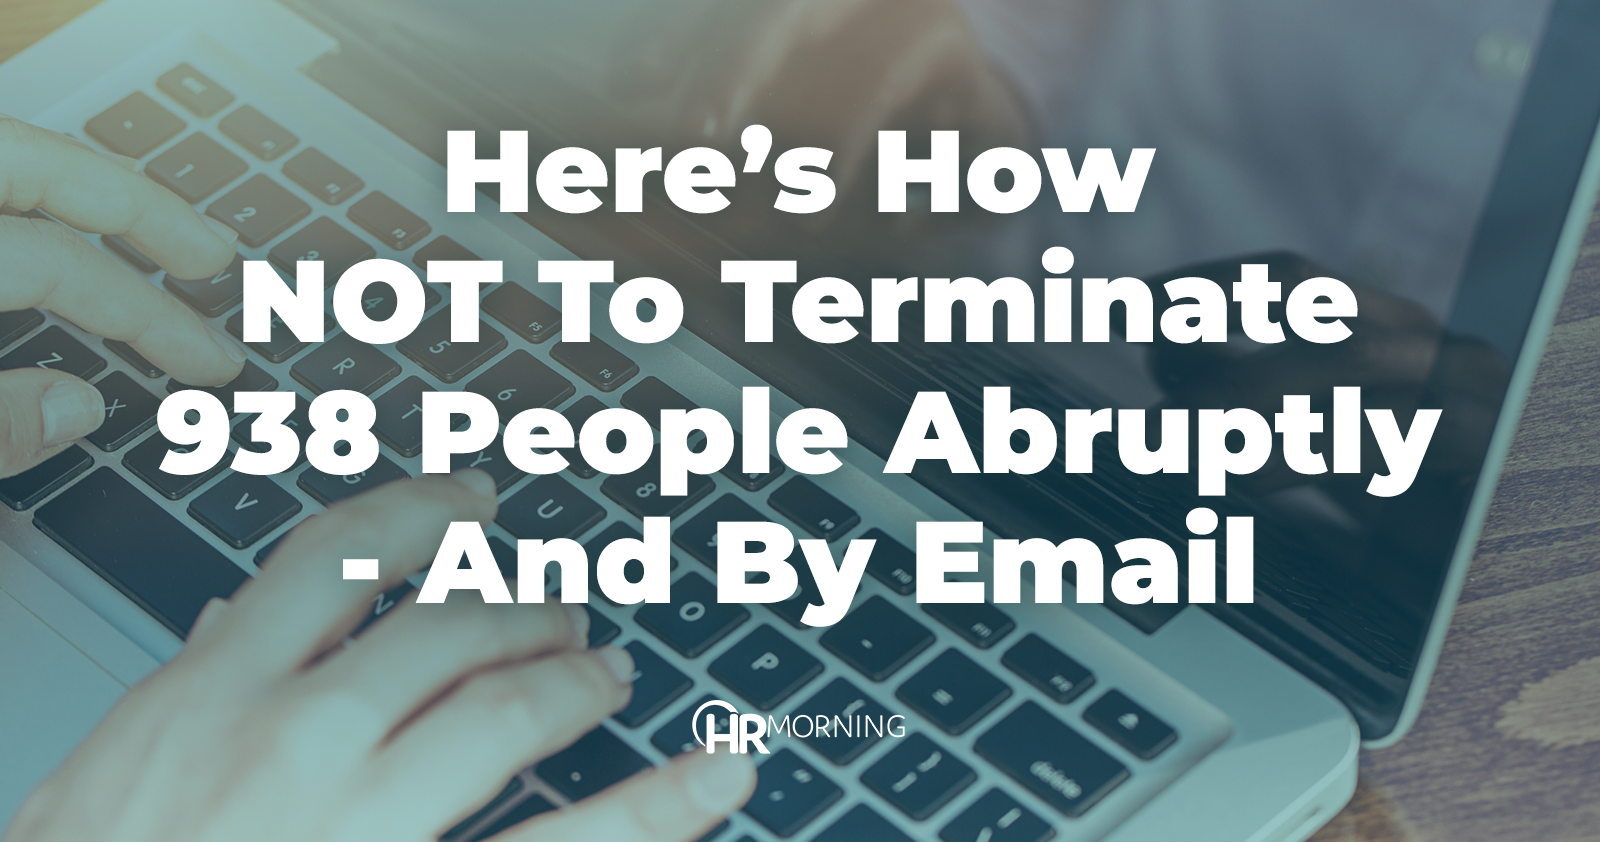 Here's how NOT to terminate 938 people abruptly - and by email